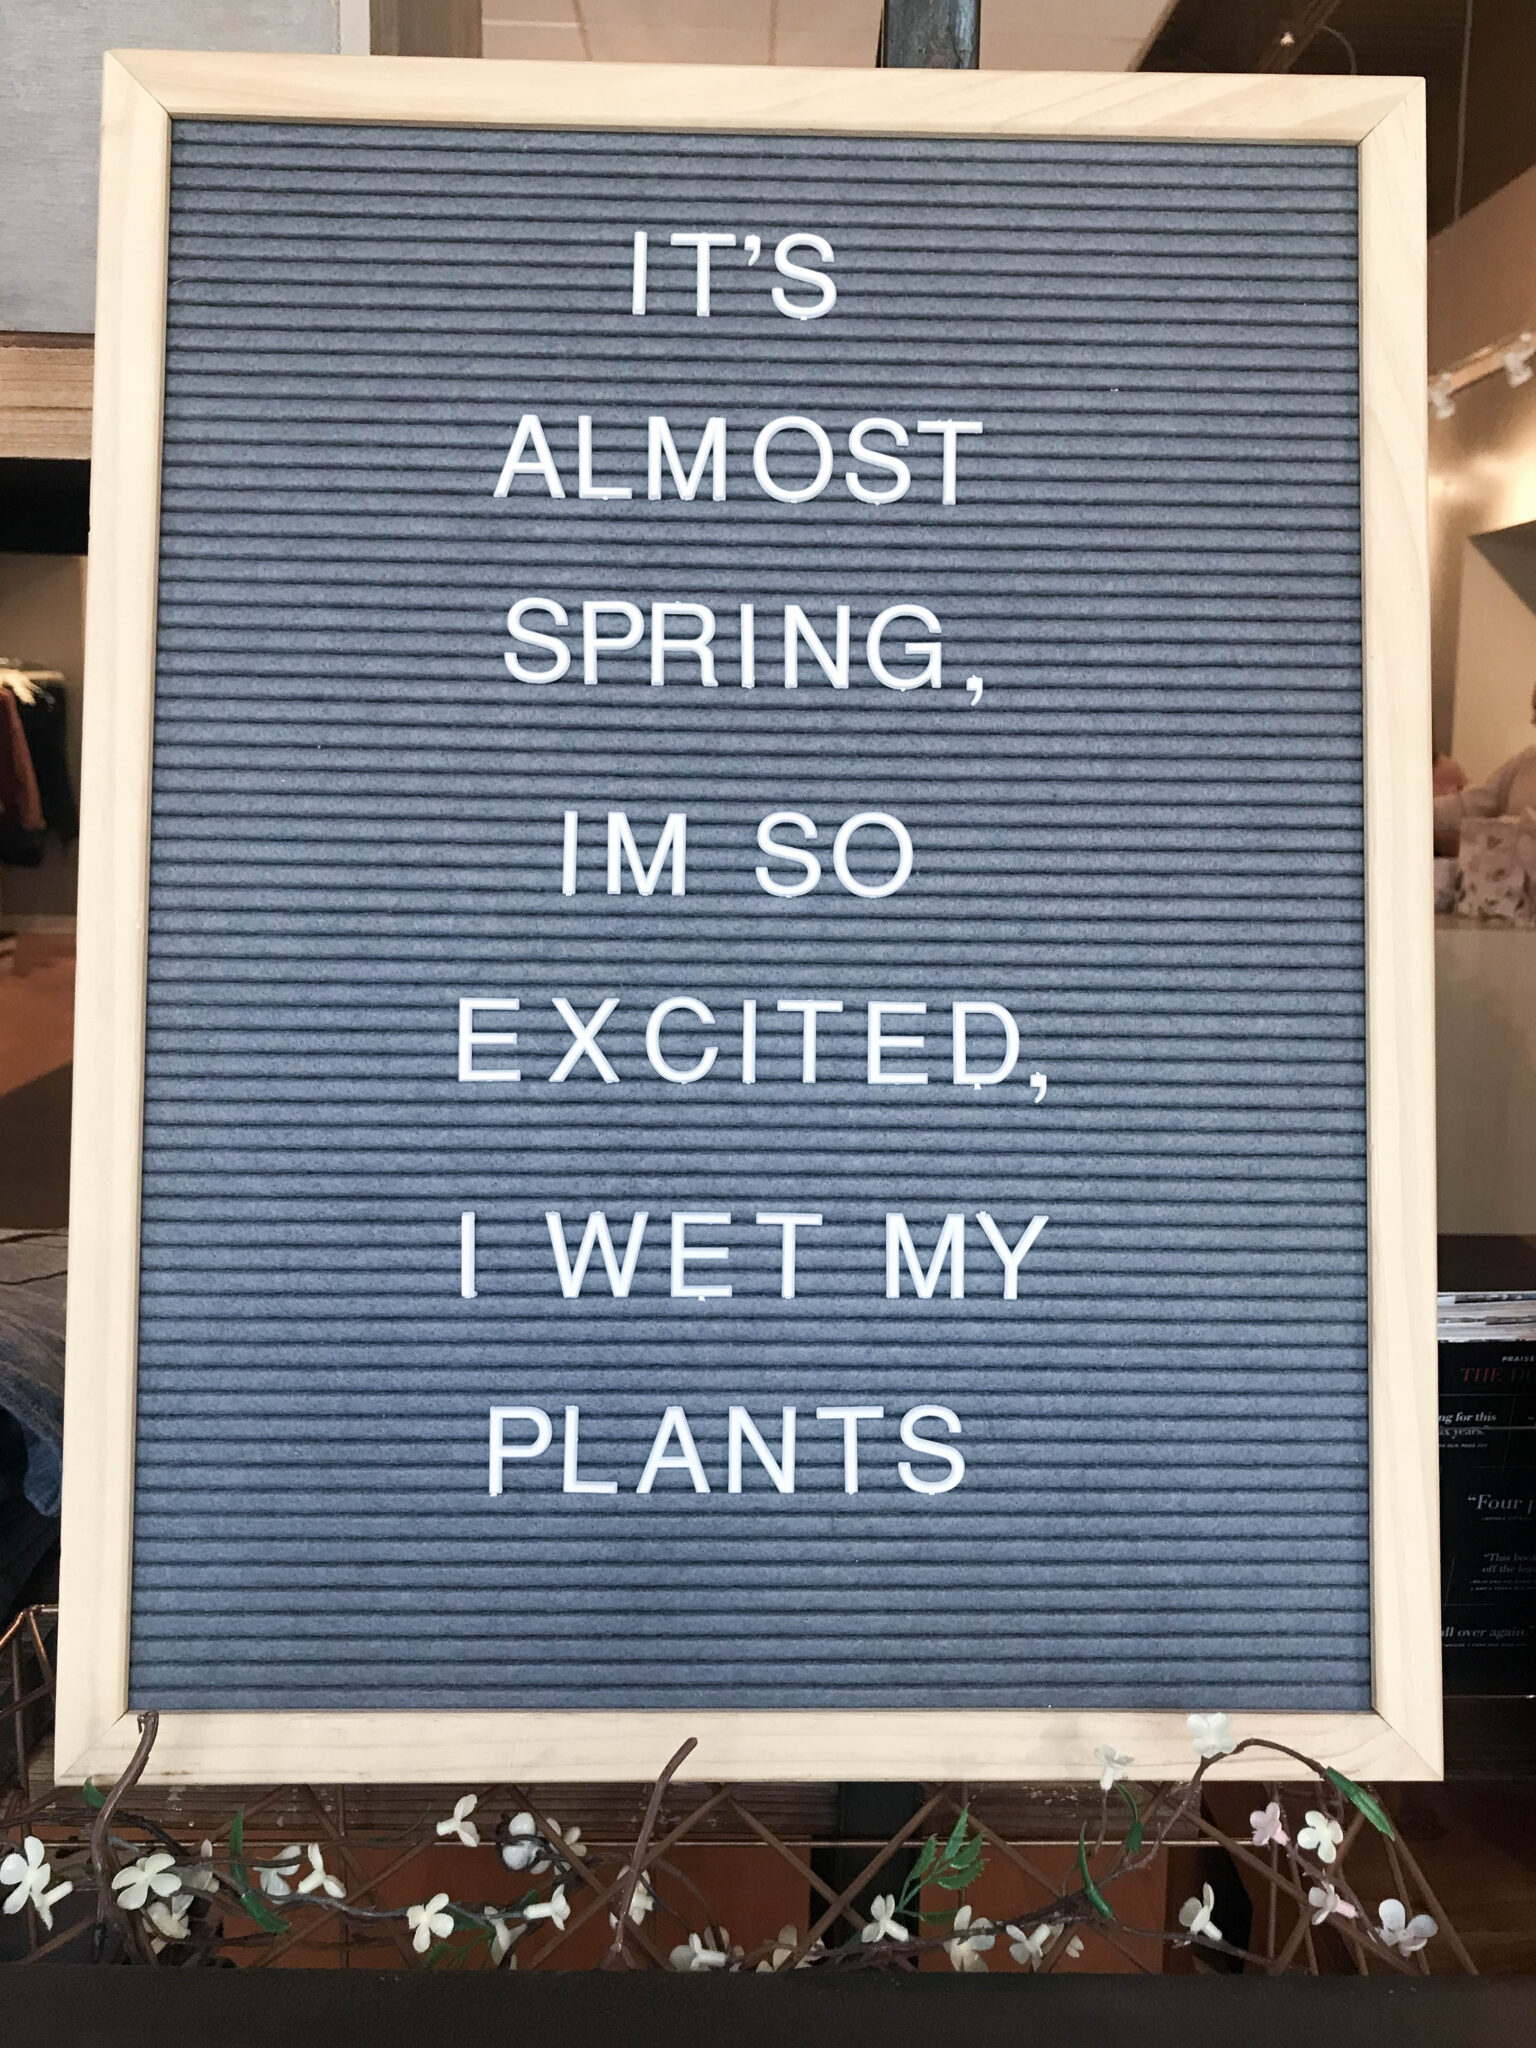 It's almost spring, I'm so excited I wet my plants.